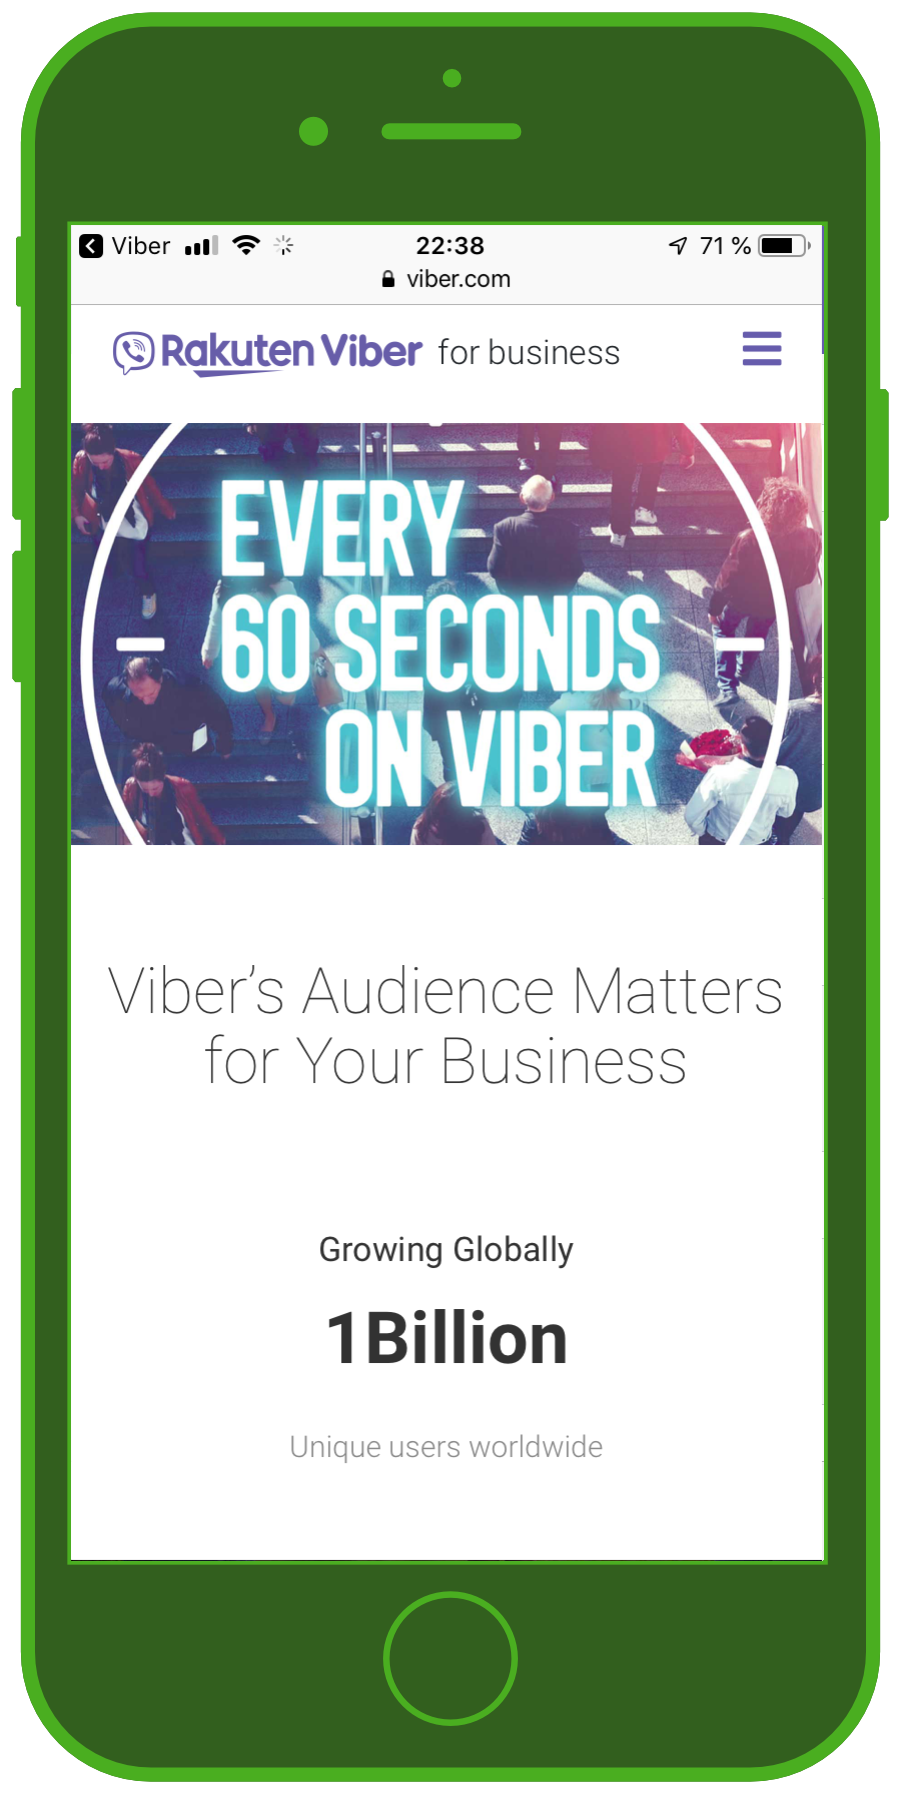 viber-messenger-business